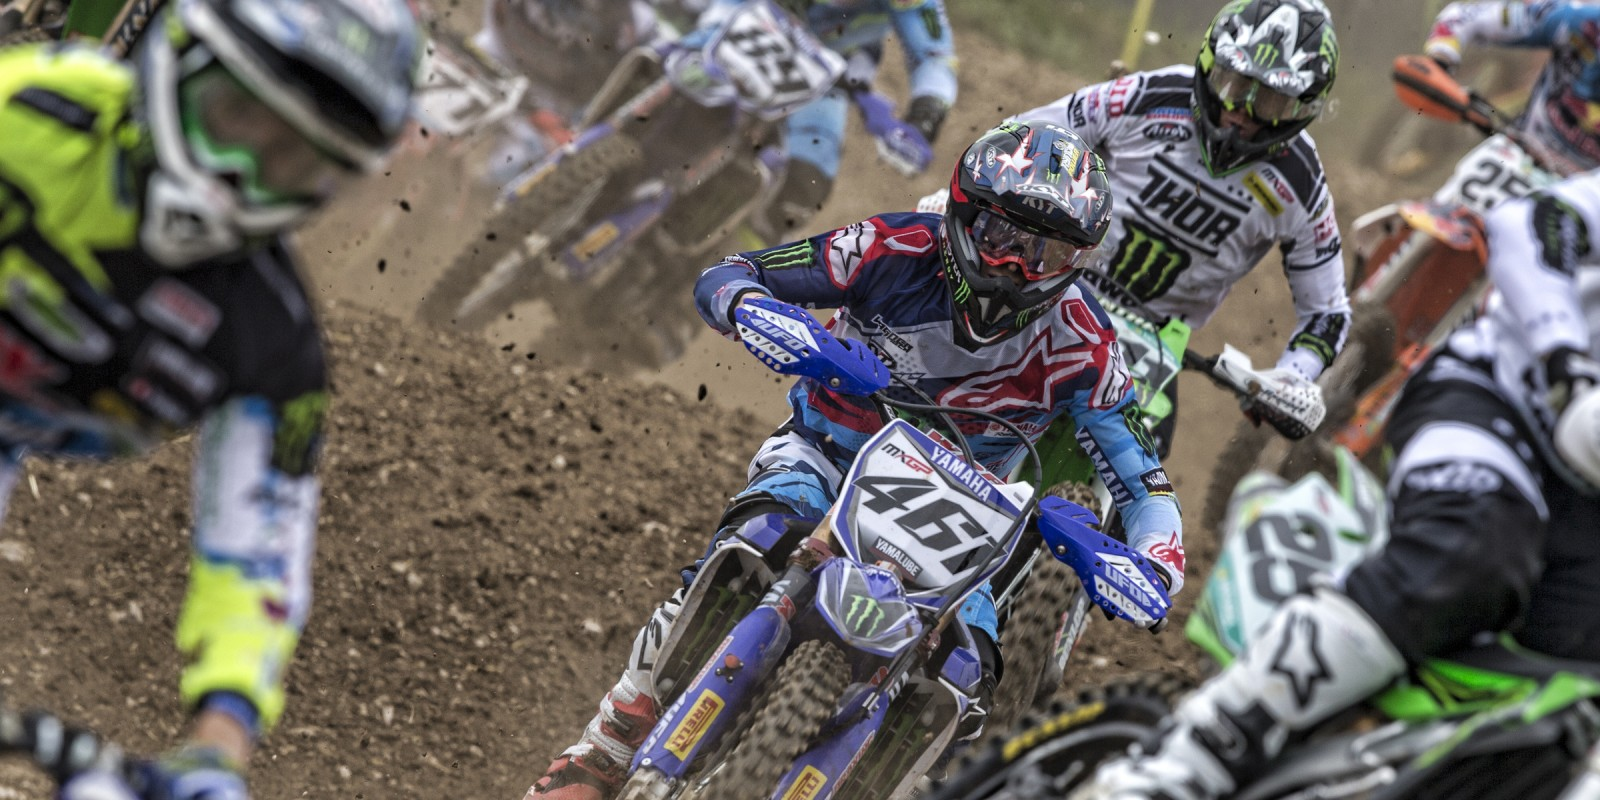 Romain Febvre at the 2016 MXGP of France